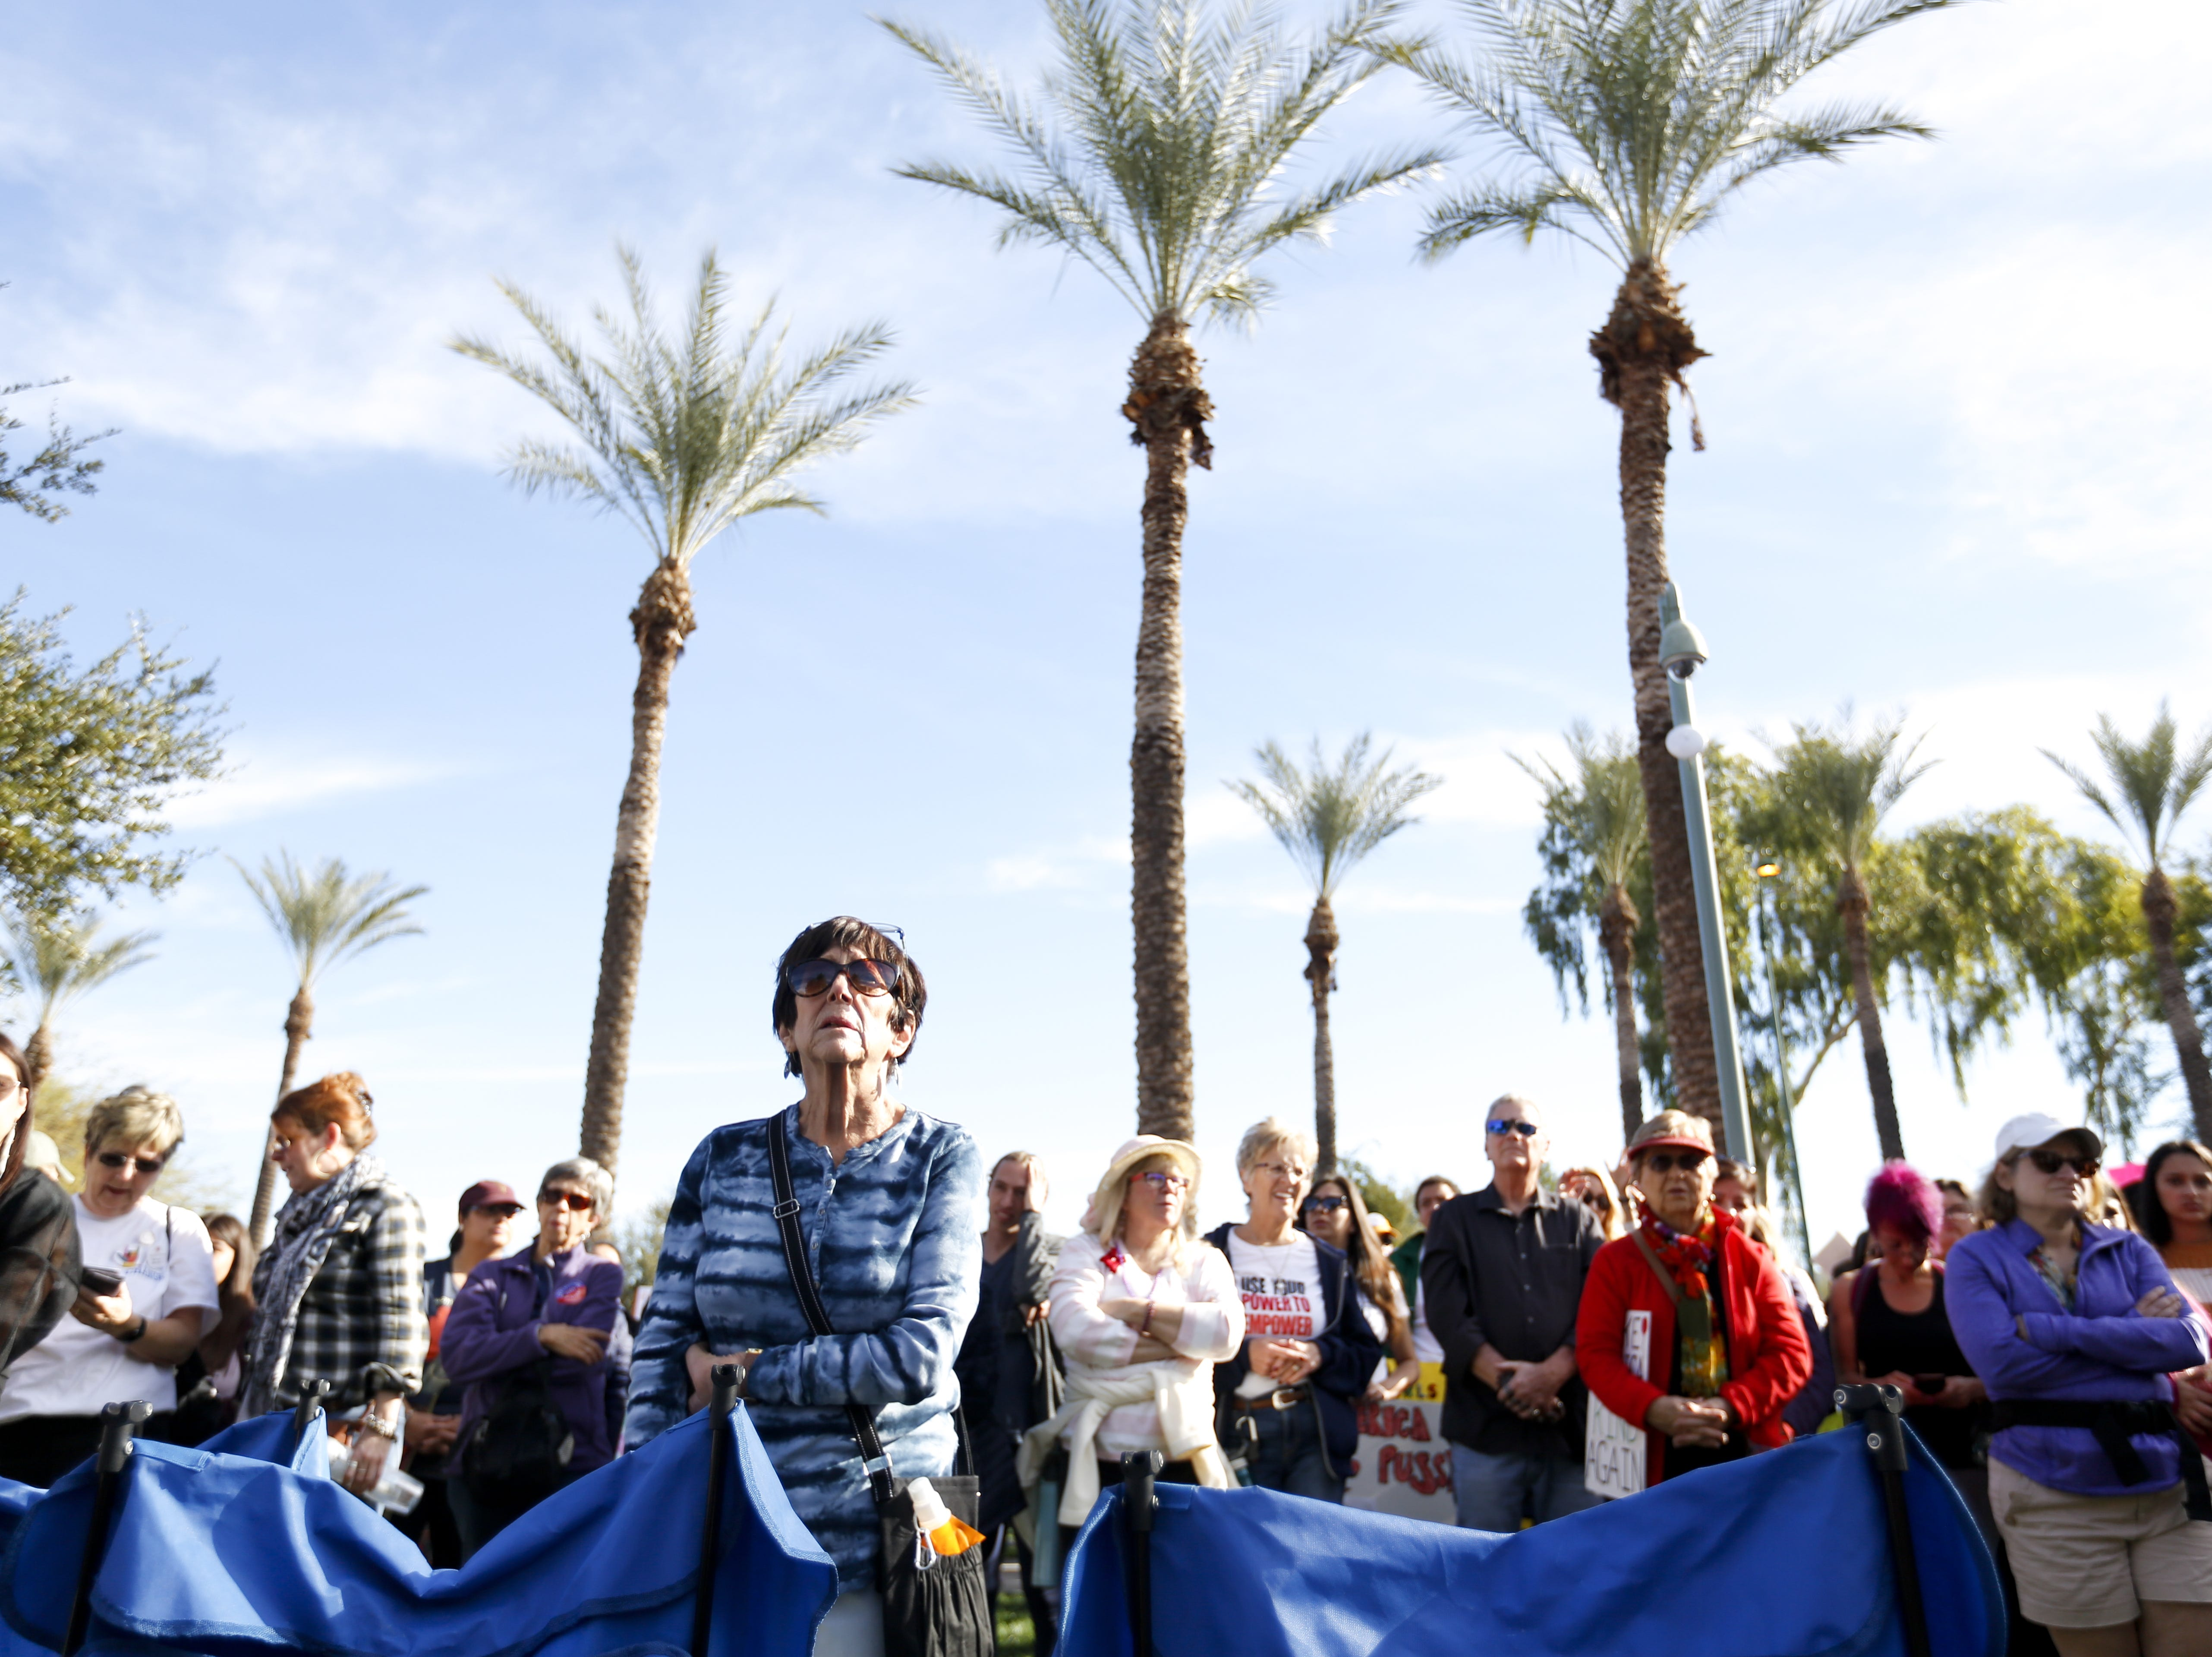 The crowd listens to the interpretation of Sherri Collins' speech at the Phoenix Women's March on Jan. 19, 2019, at the Arizona Capitol.